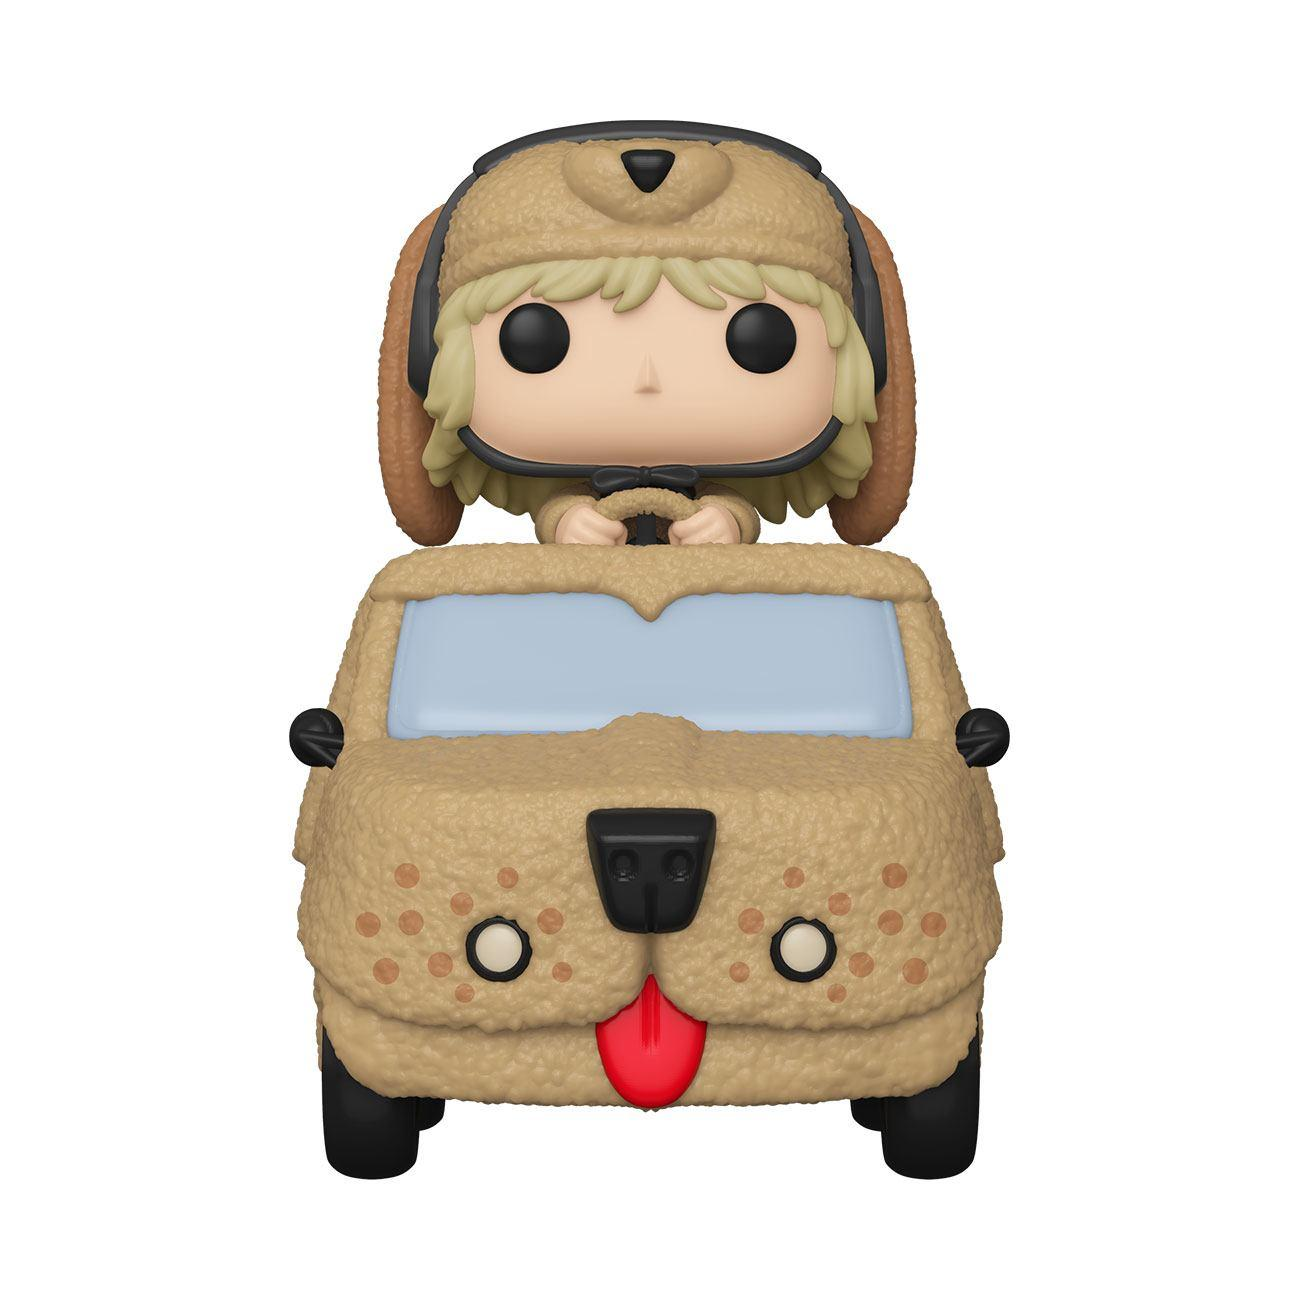 Dumb and dumber pop rides vinyl figurine harry dunne in mutts cutts van 18 cm